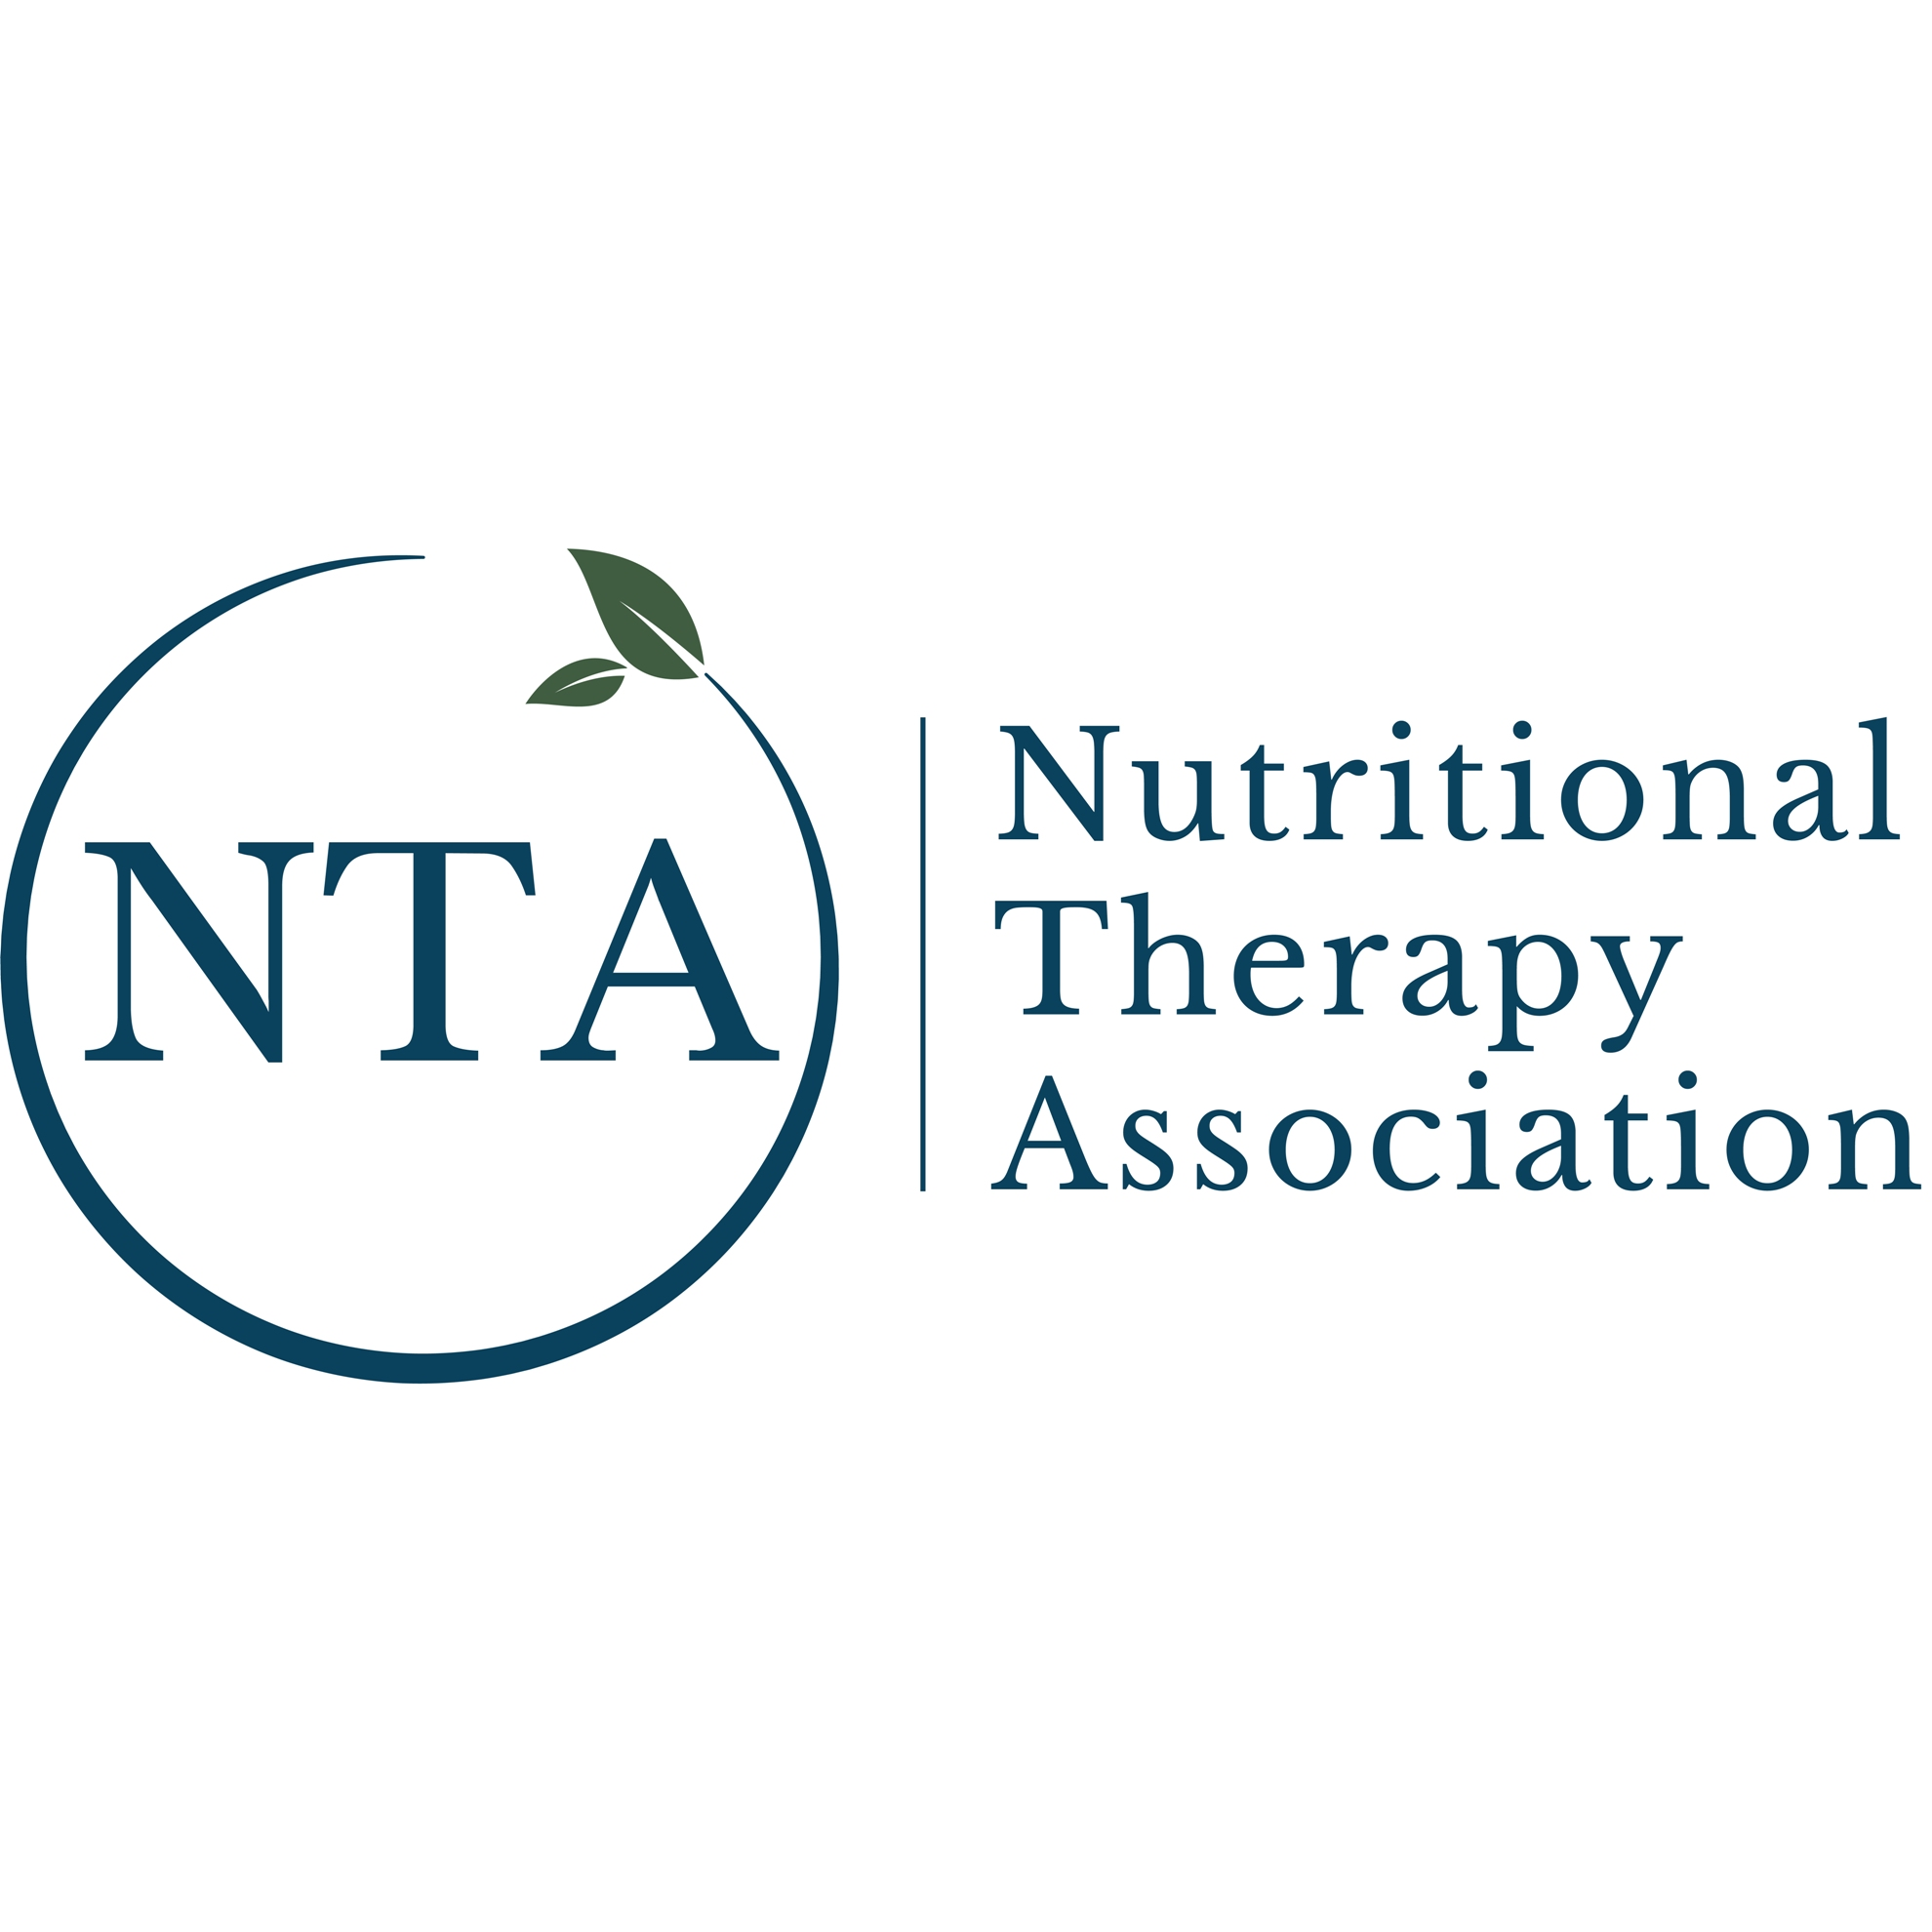 NTA  is a nutrition school for individuals & professionals seeking a foundational & holistic approach for assessing nutritional deficiencies in the body.